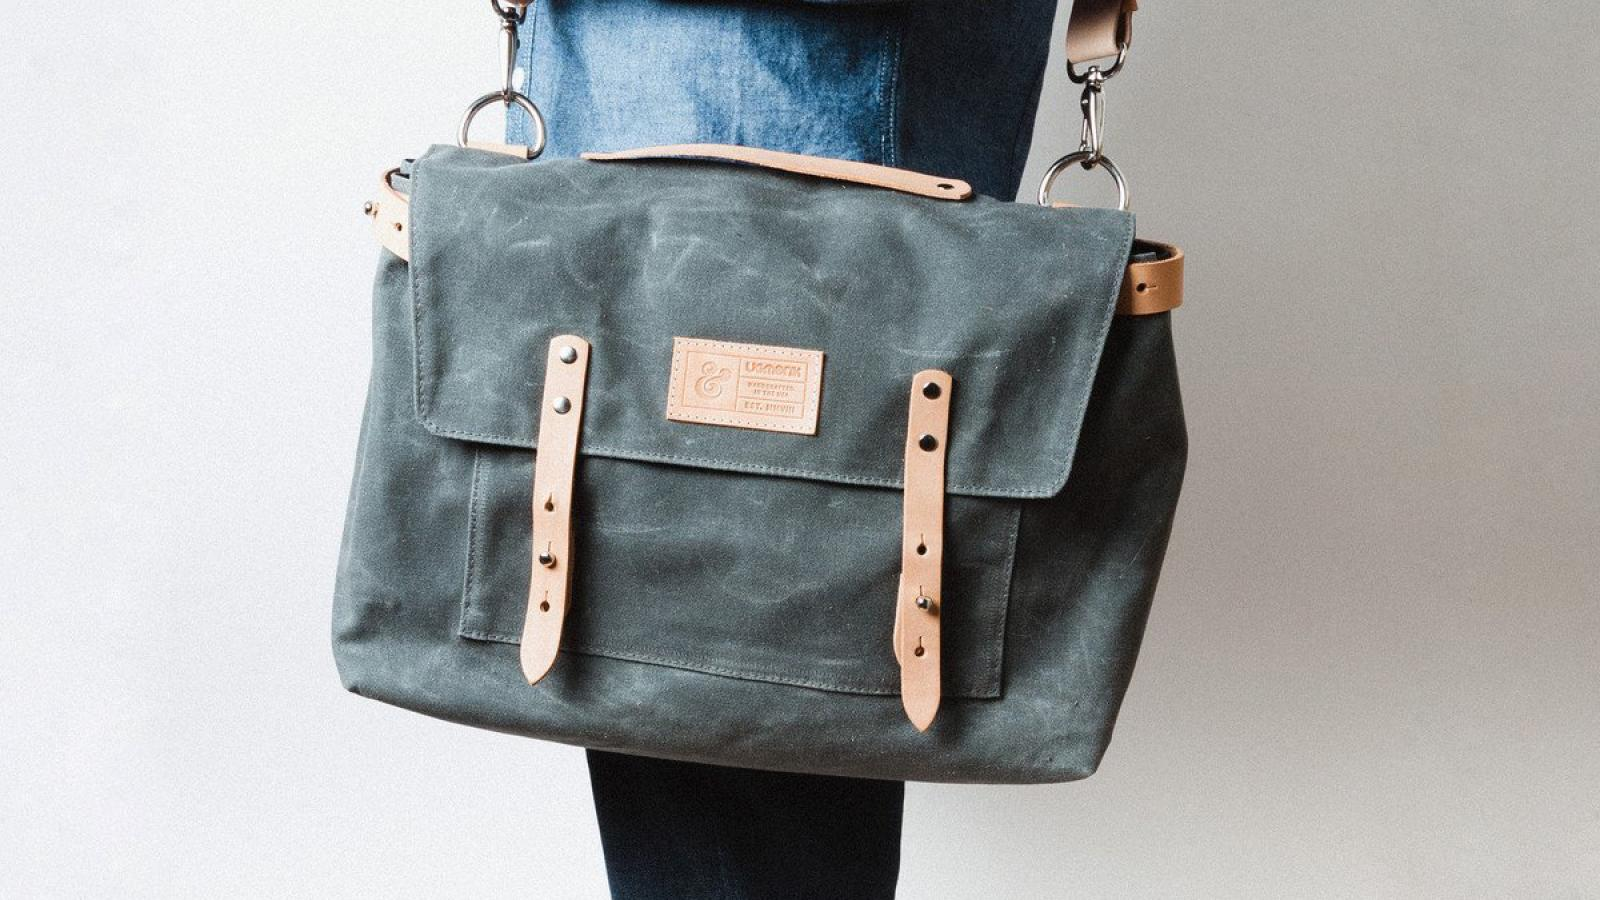 Case Study: Messenger Bag by Ugmonk